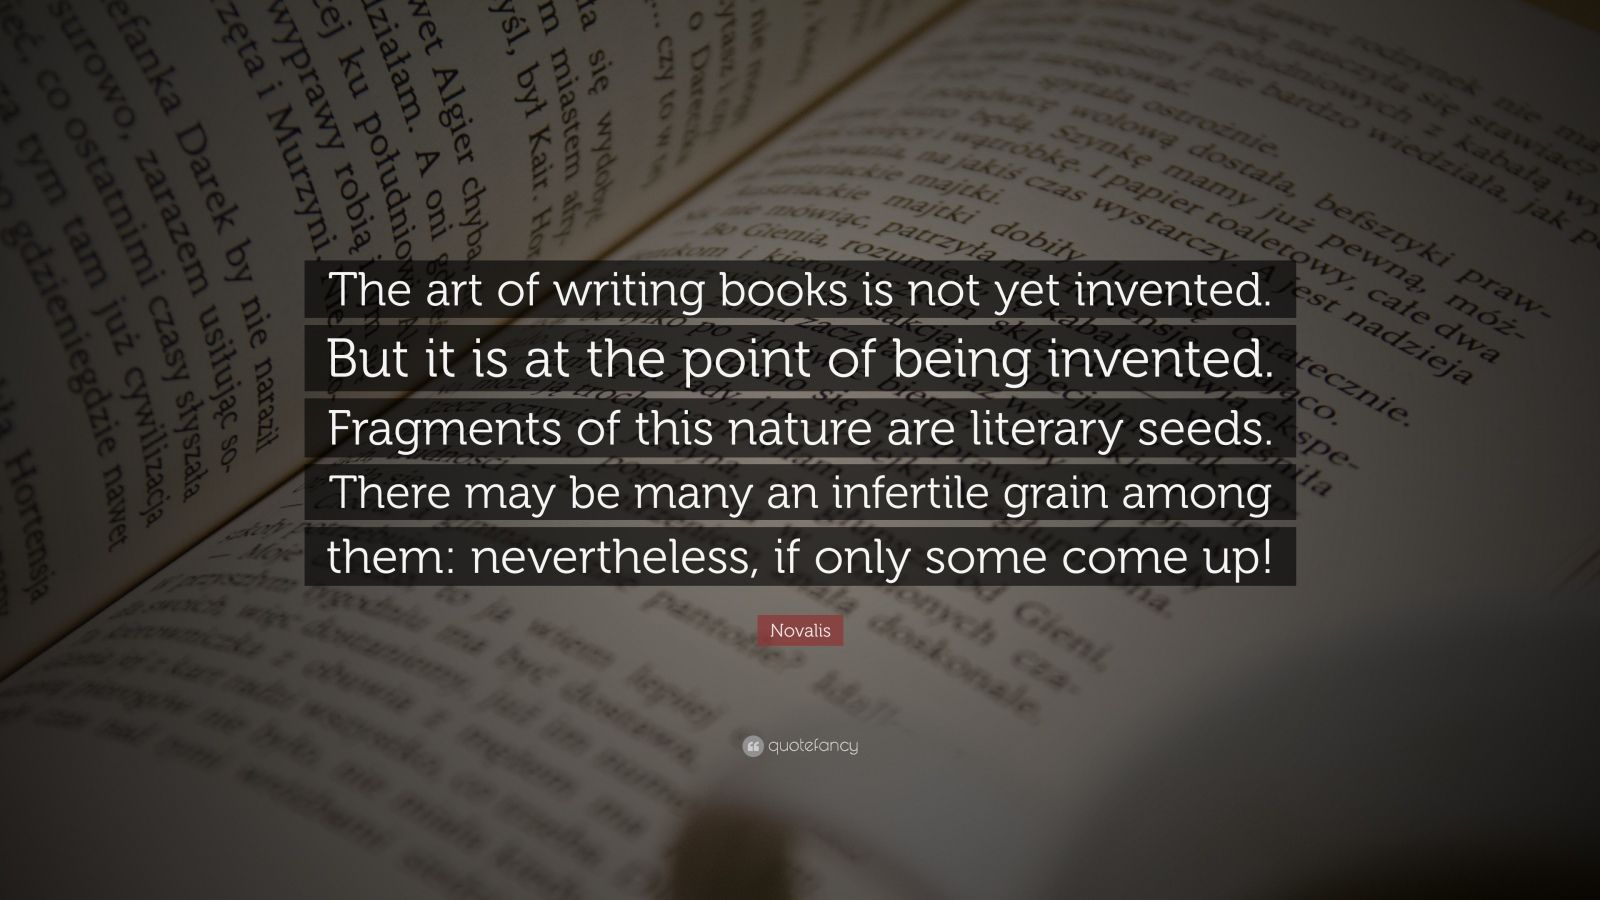 """Novalis Quote: """"The art of writing books is not yet invented. But it is at the point of being invented. Fragments of this nature are literary seeds. There may be many an infertile grain among them: nevertheless, if only some come up!"""""""